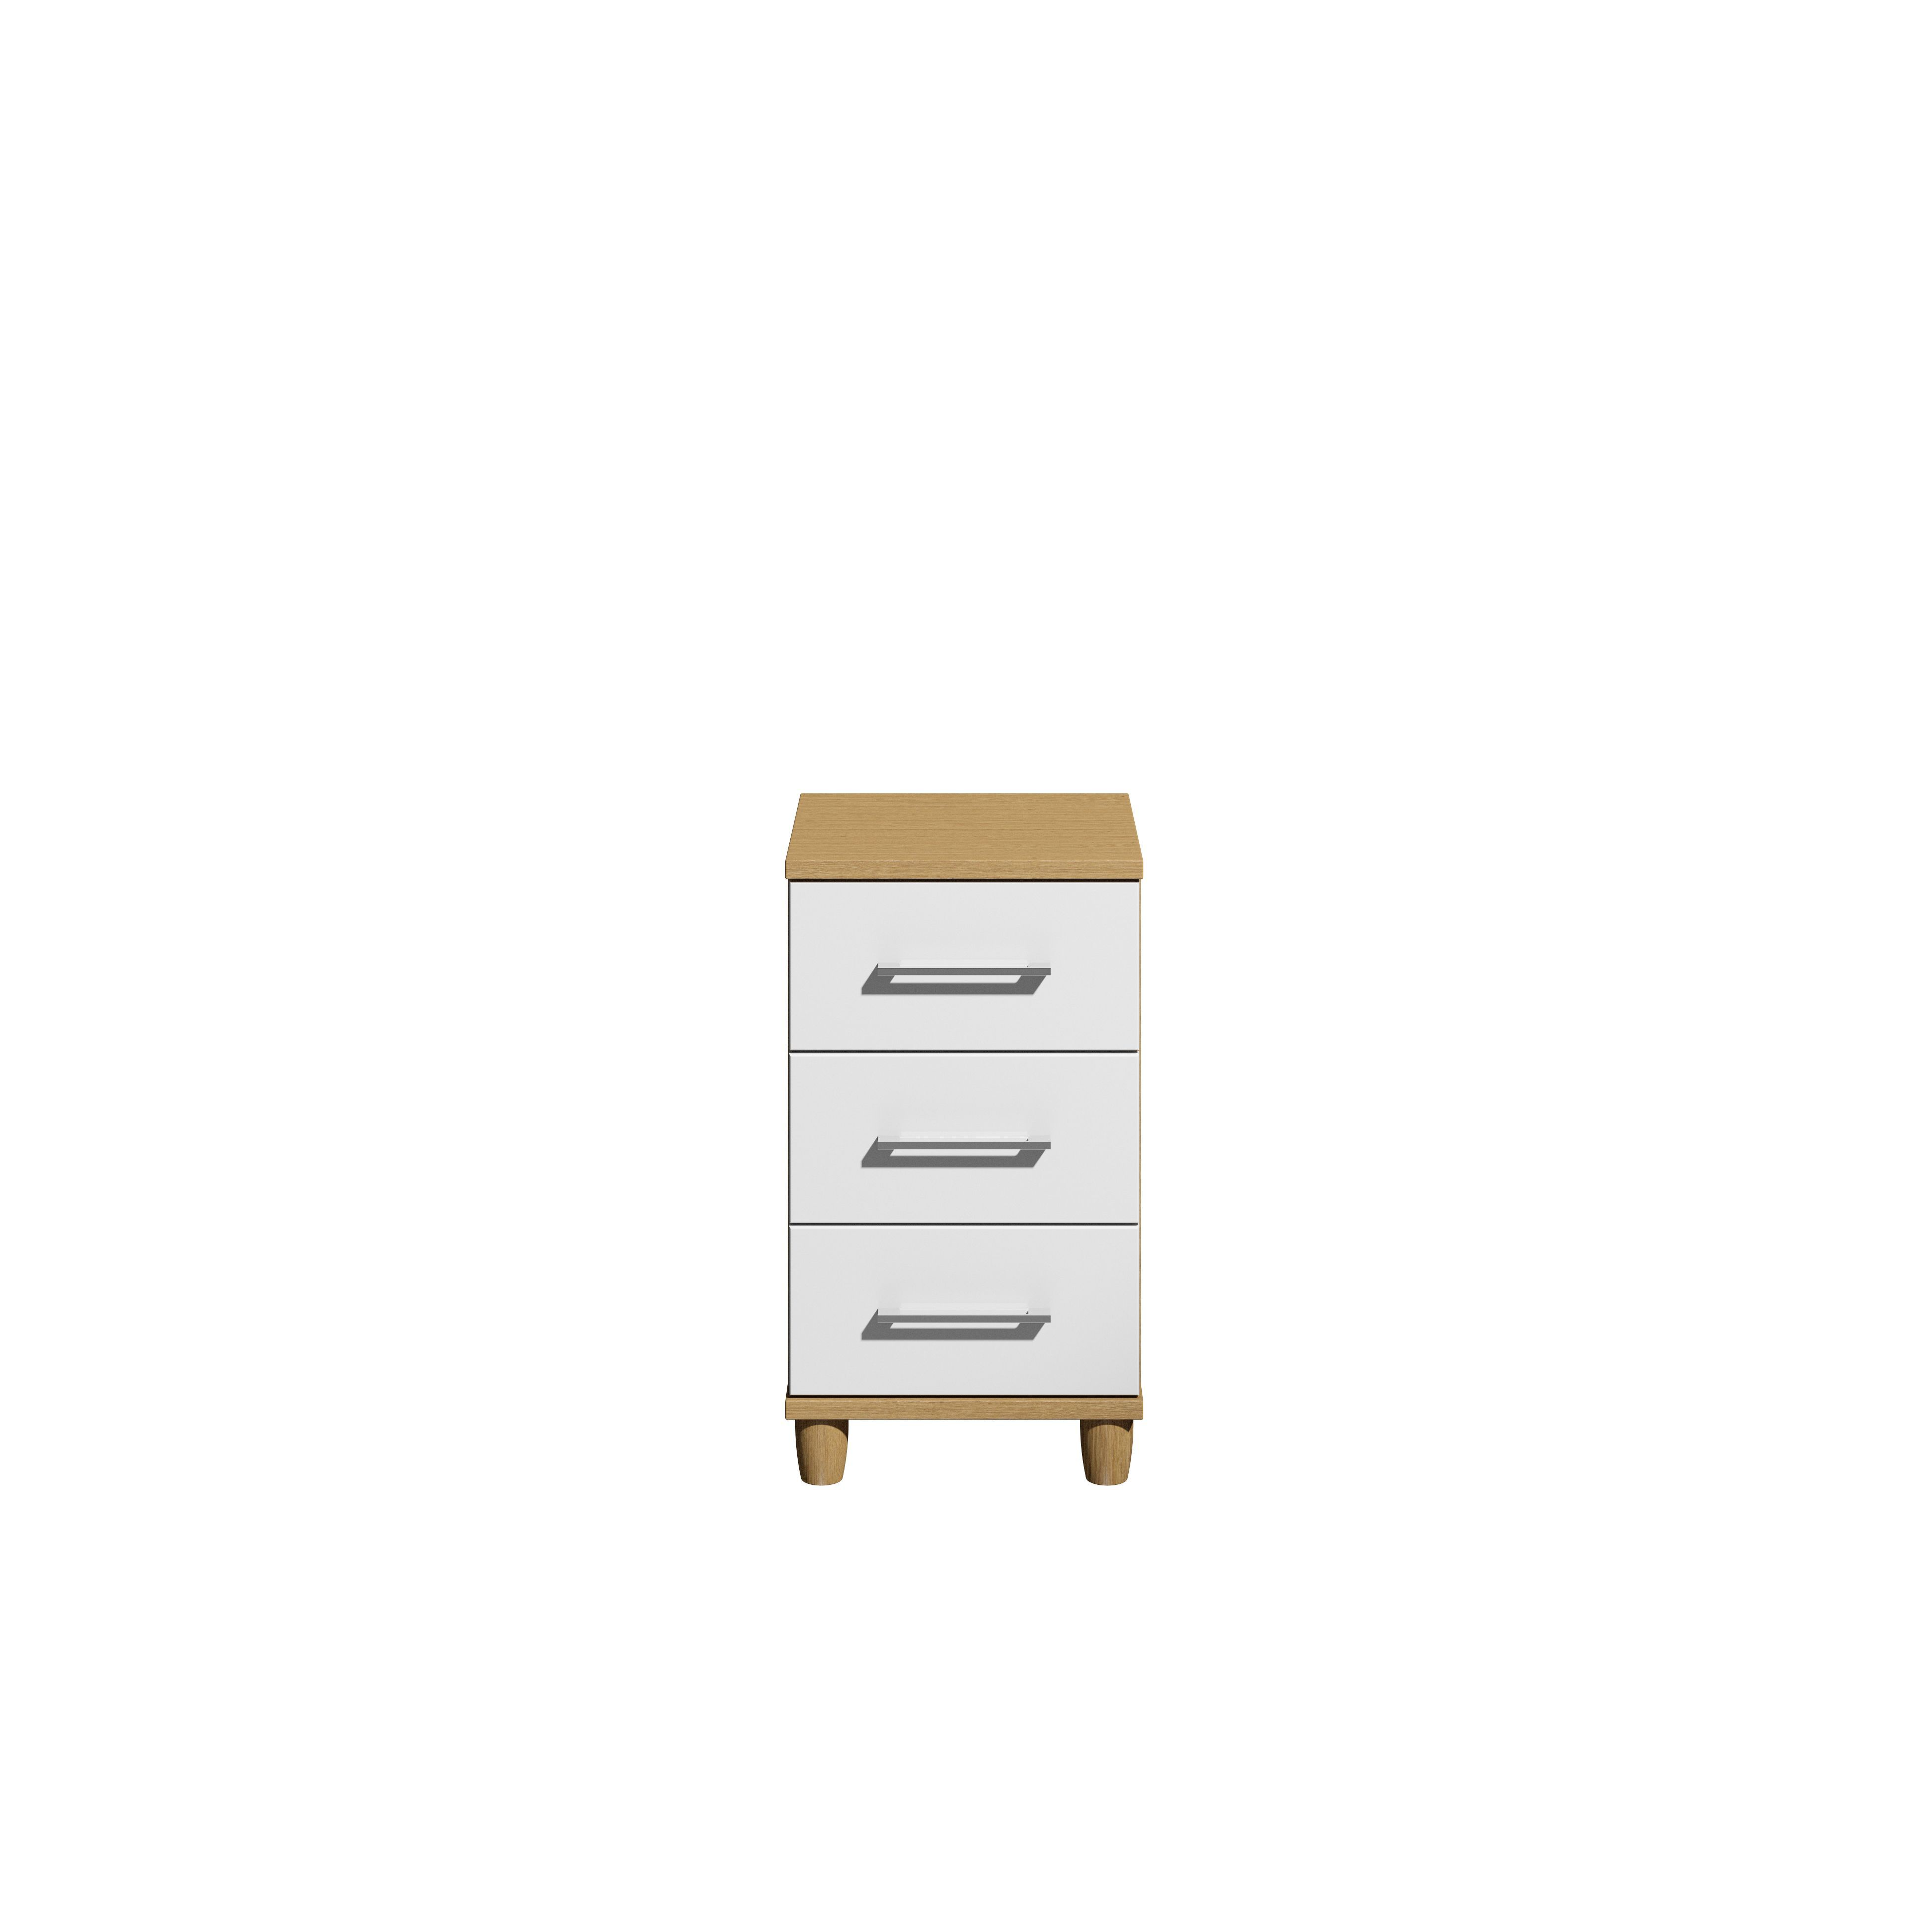 black tall luxury as nightstand white table slimline collection small stand full elegant night same size bedside of drawer hemnes ikea chest brown